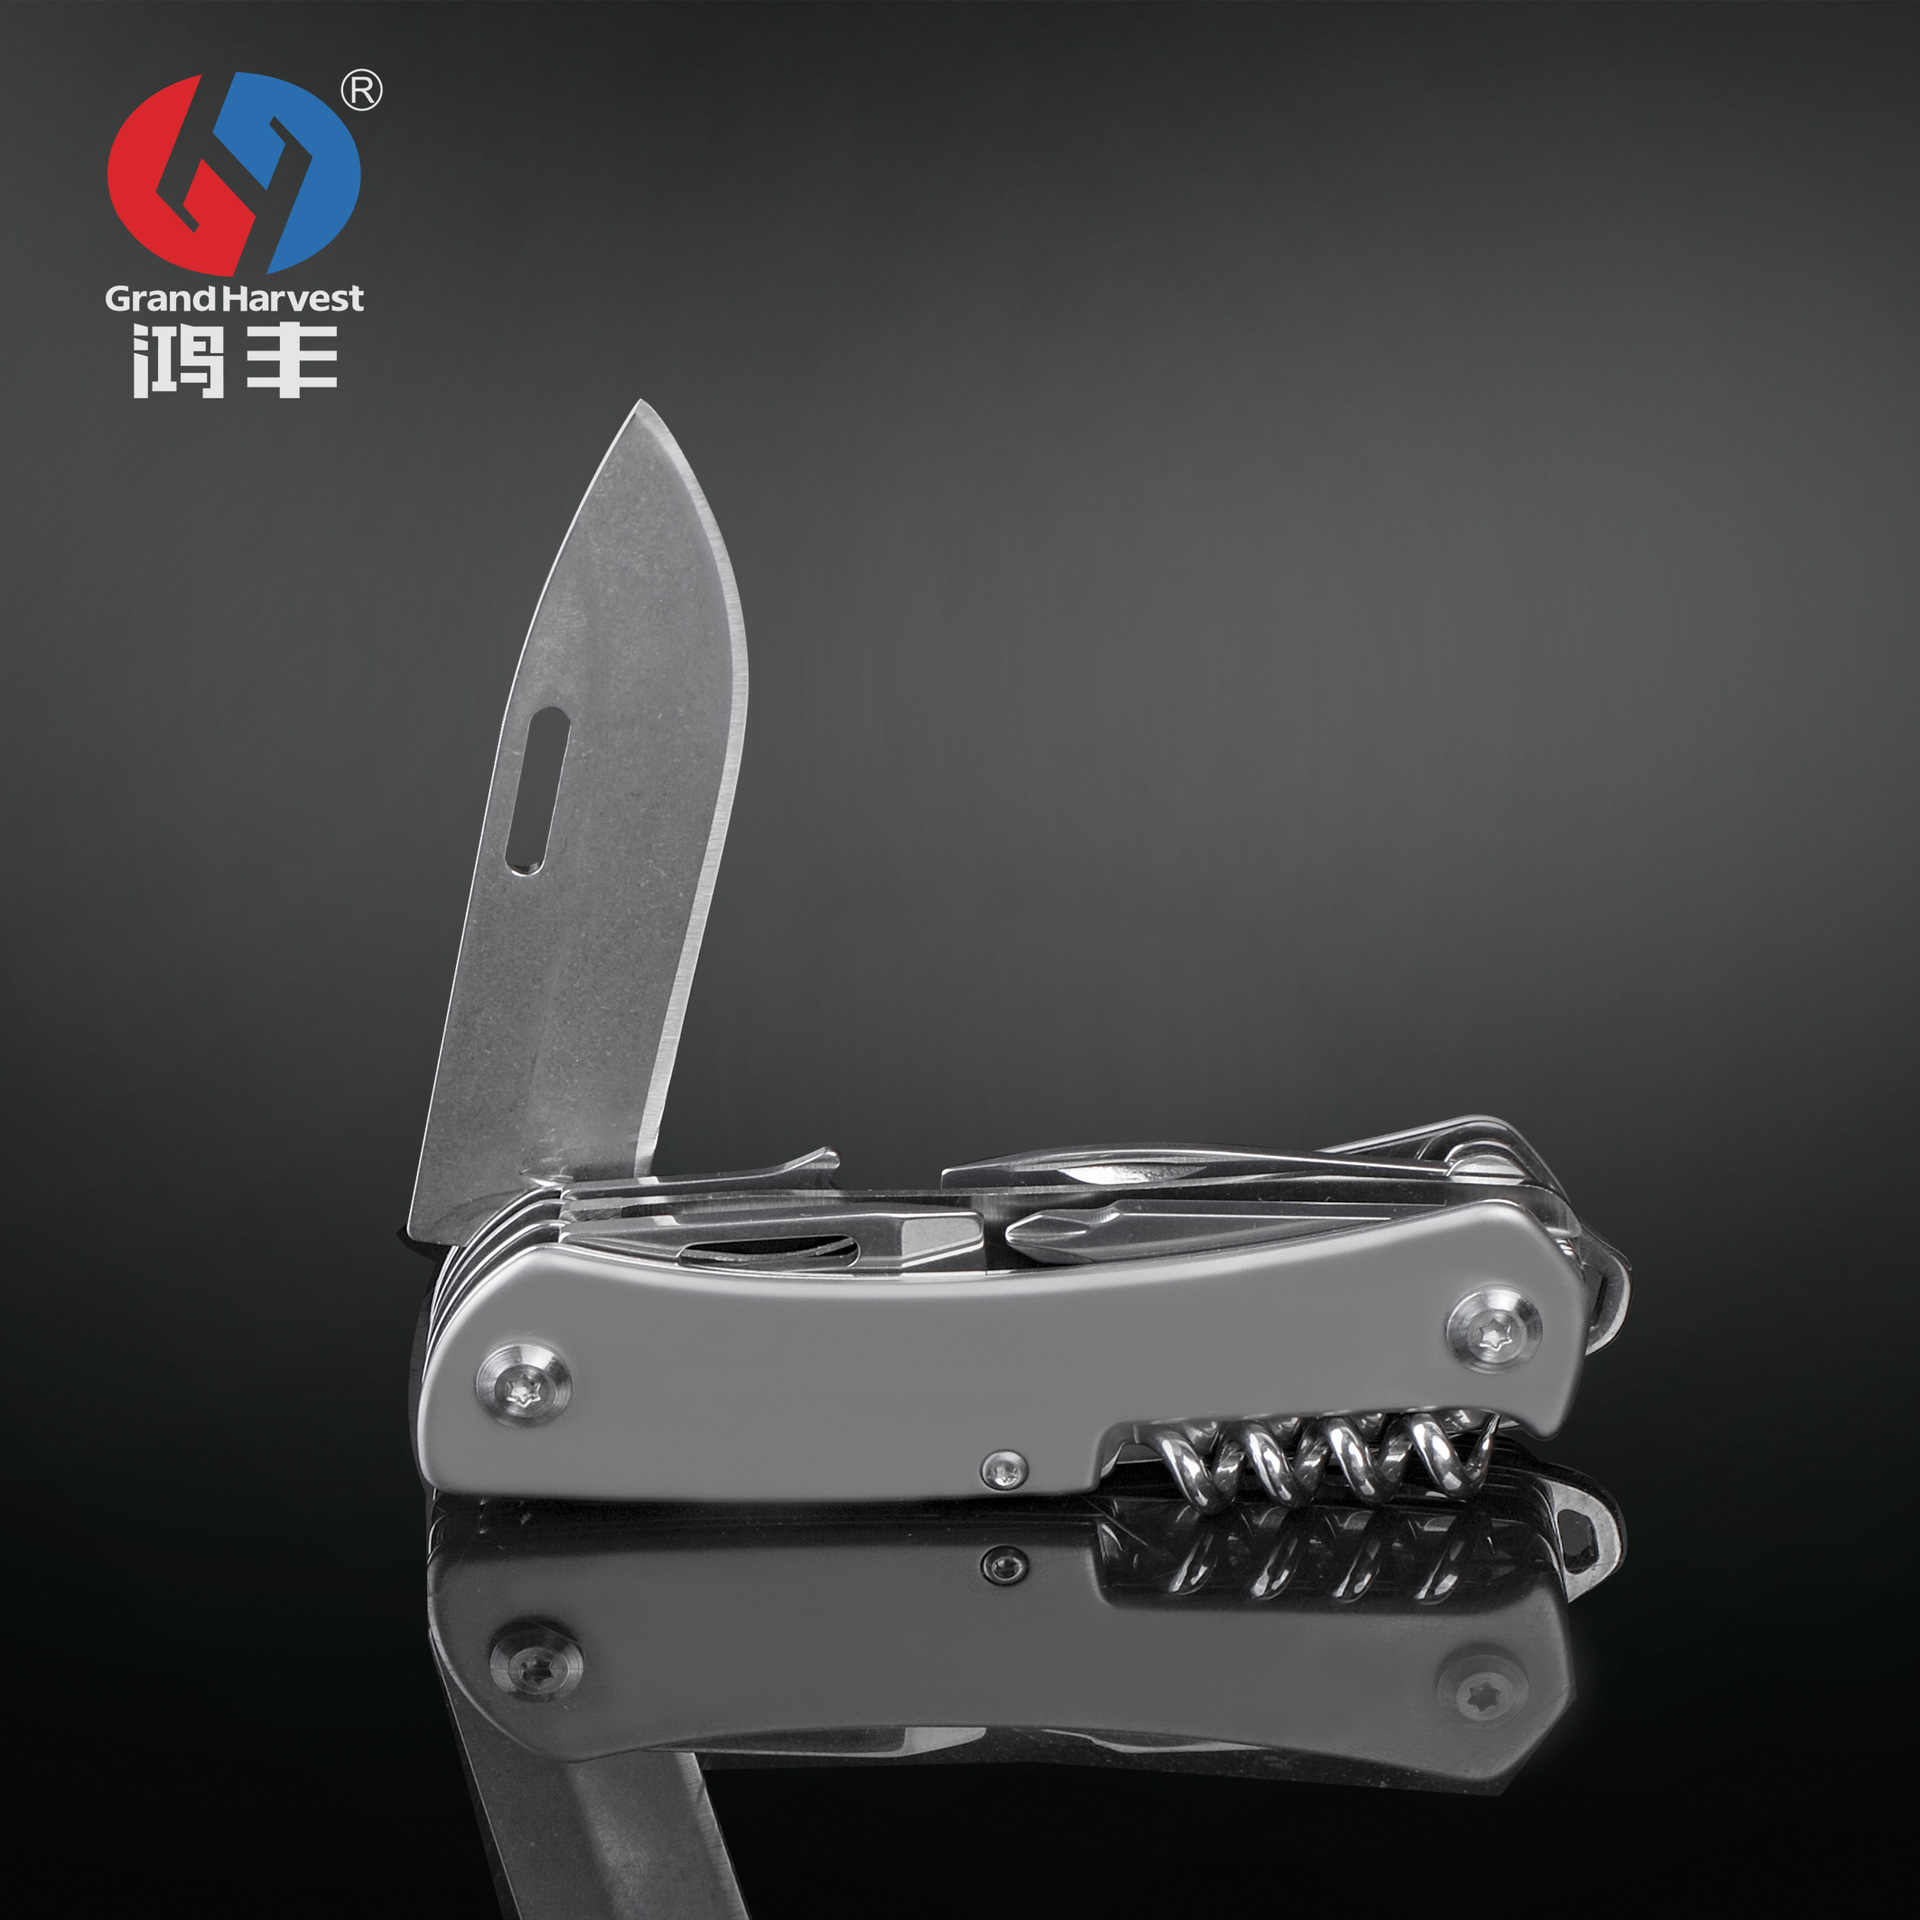 9 in 1 Multitool Tactical Swis Army Knife Outdoor Survival Folding Blade Knife Multi Tools EDC Gear 440 Stainless Steel